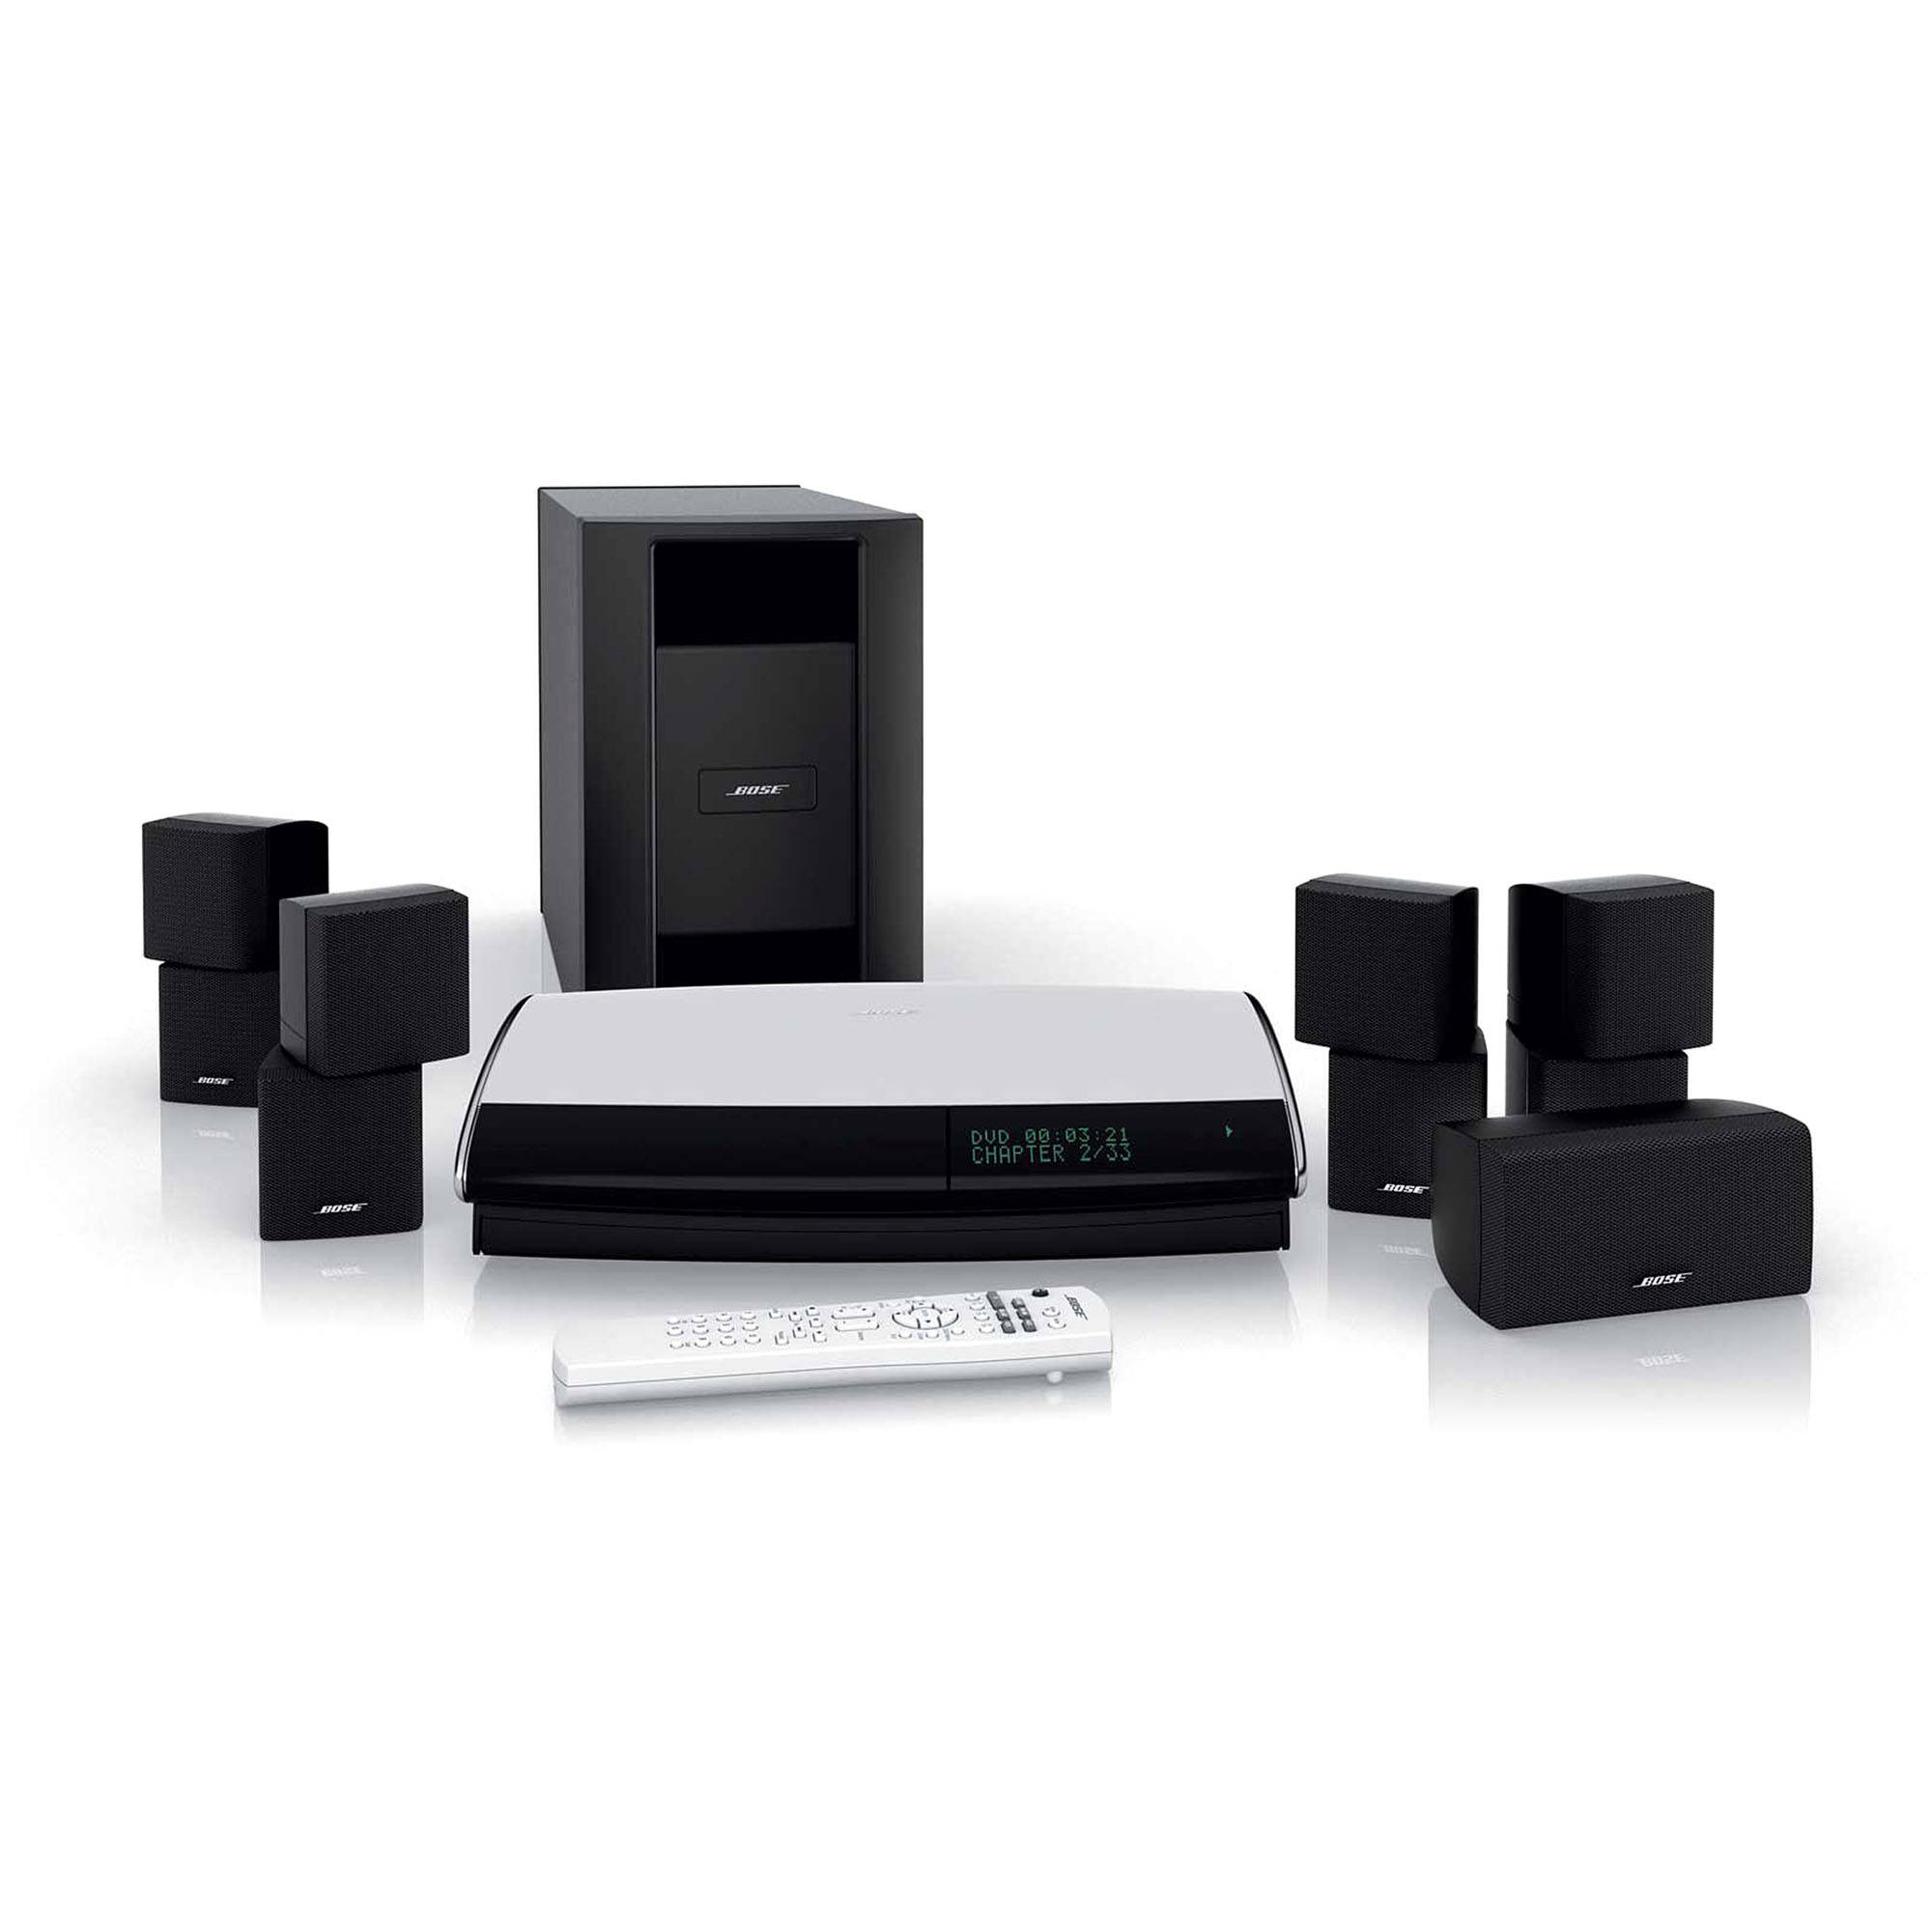 bose lifestyle 28 series iii dvd home entertainment system 40431 rh bhphotovideo com bose lifestyle 28 series iii specs bose lifestyle 28 series ii home theater system manual